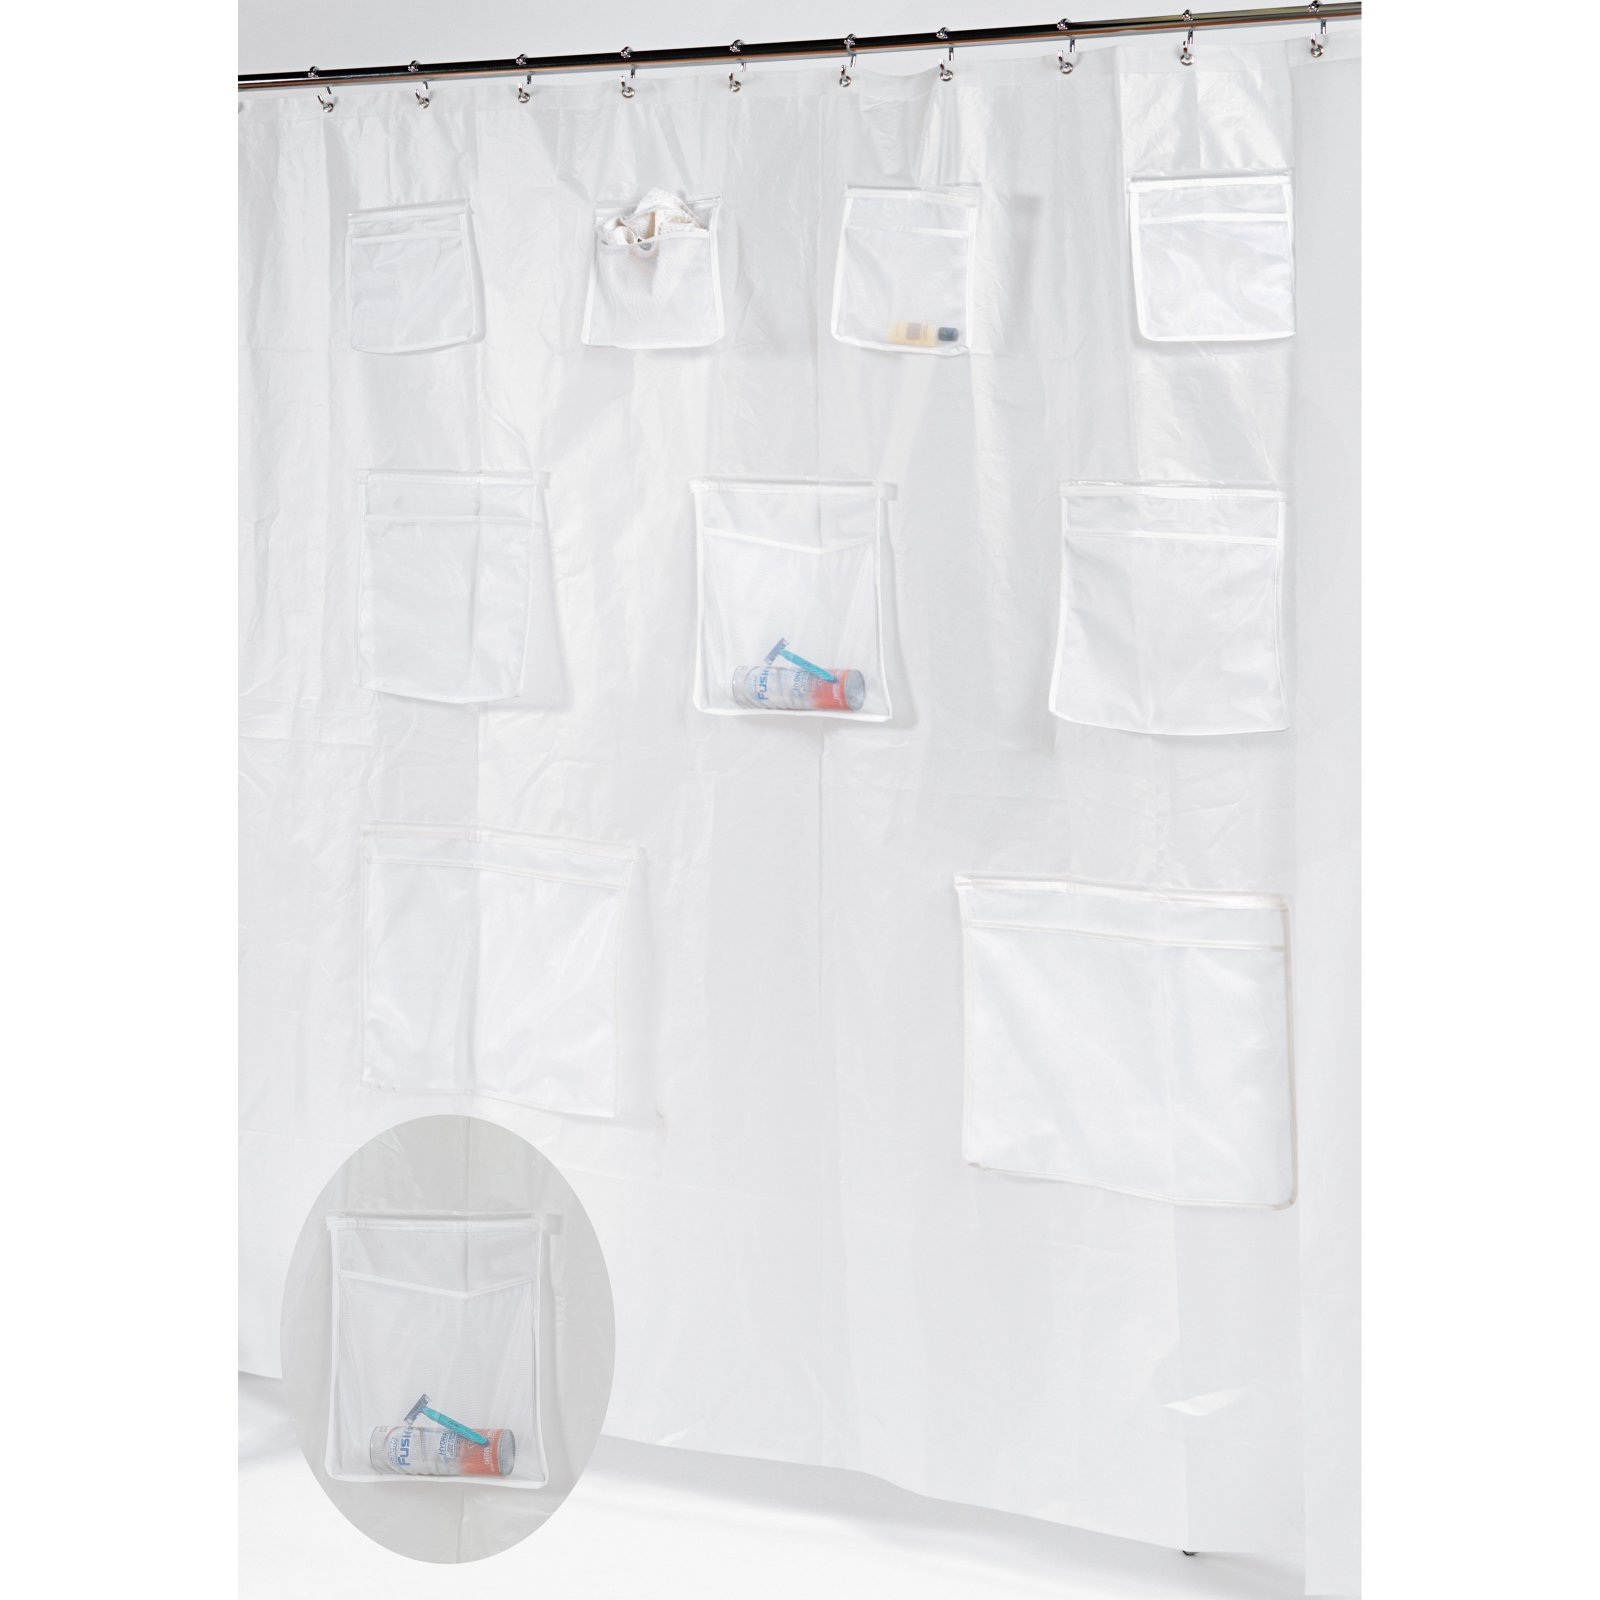 "Pockets"" PEVA Shower Curtain in Frosty Clear"